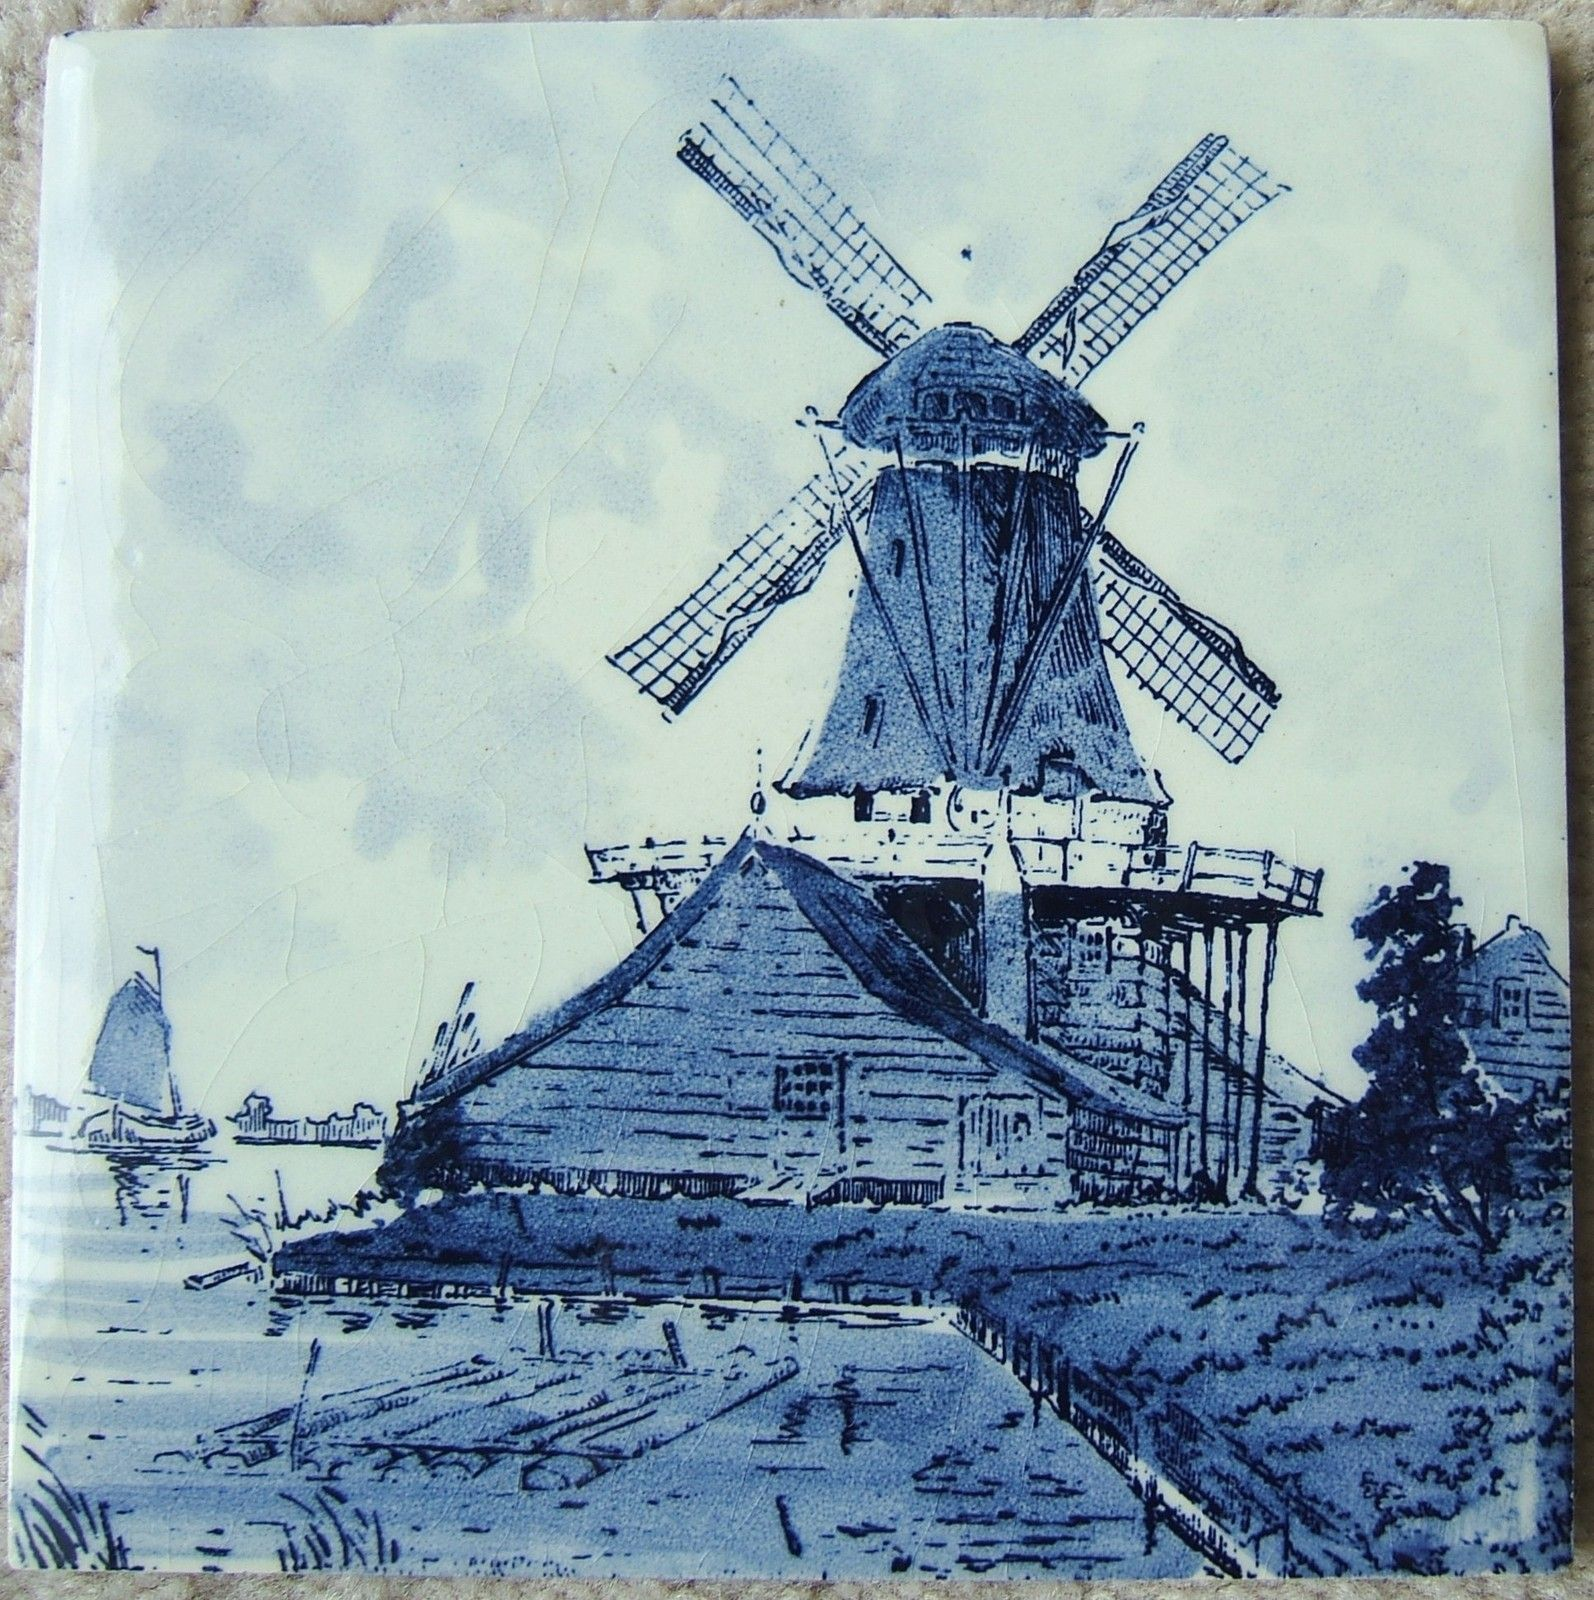 Vintage windmill sailboat seaside ceramic tile delft blue tile vintage windmill sailboat seaside ceramic tile delft blue tile ebay dailygadgetfo Image collections